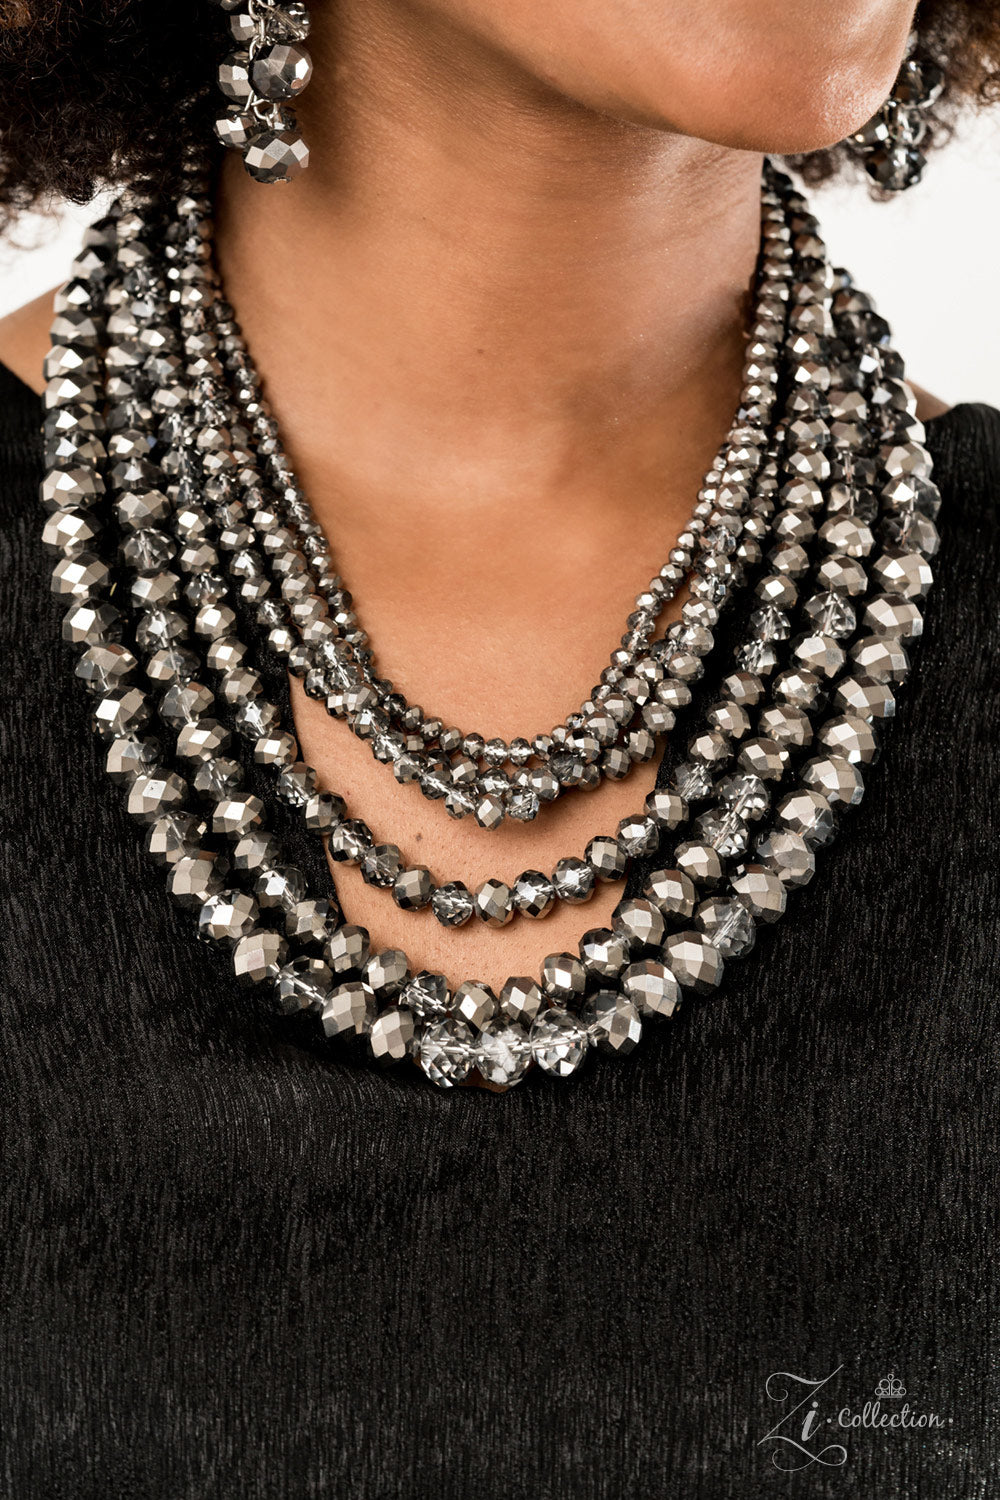 Knockout Zi Collection Paparazzi Necklace